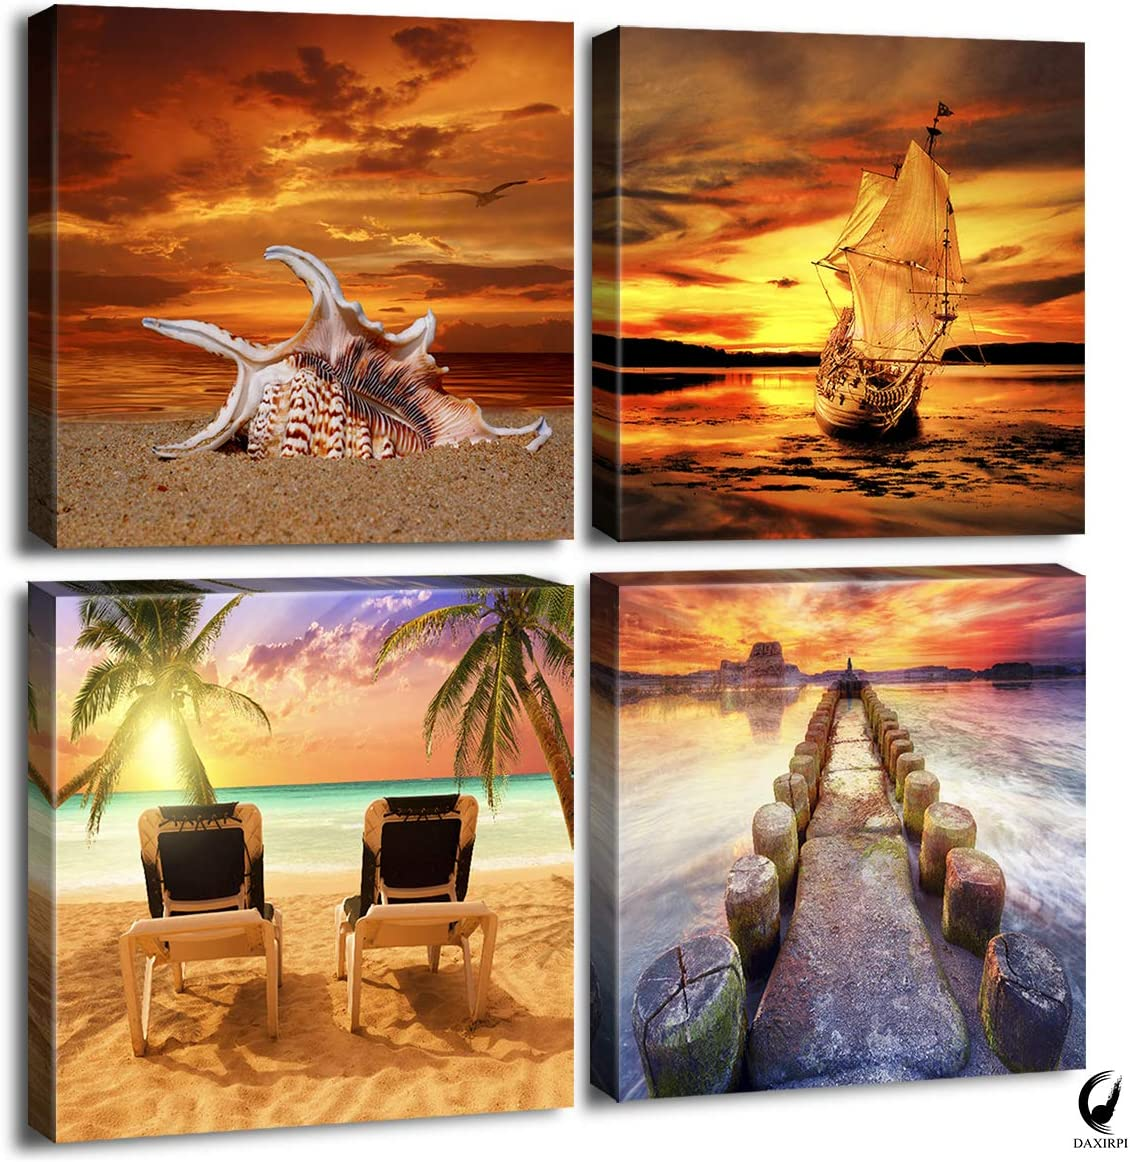 Ocean Sunset Canvas Wall Art Beach Home Decor Painting 12 x 12 x 4 Pieces Orange Seascape Canvas Art Sea Shore Nature Picture Modern Artwork Sailboat Framed Ready to Hang for Home Office Decoration